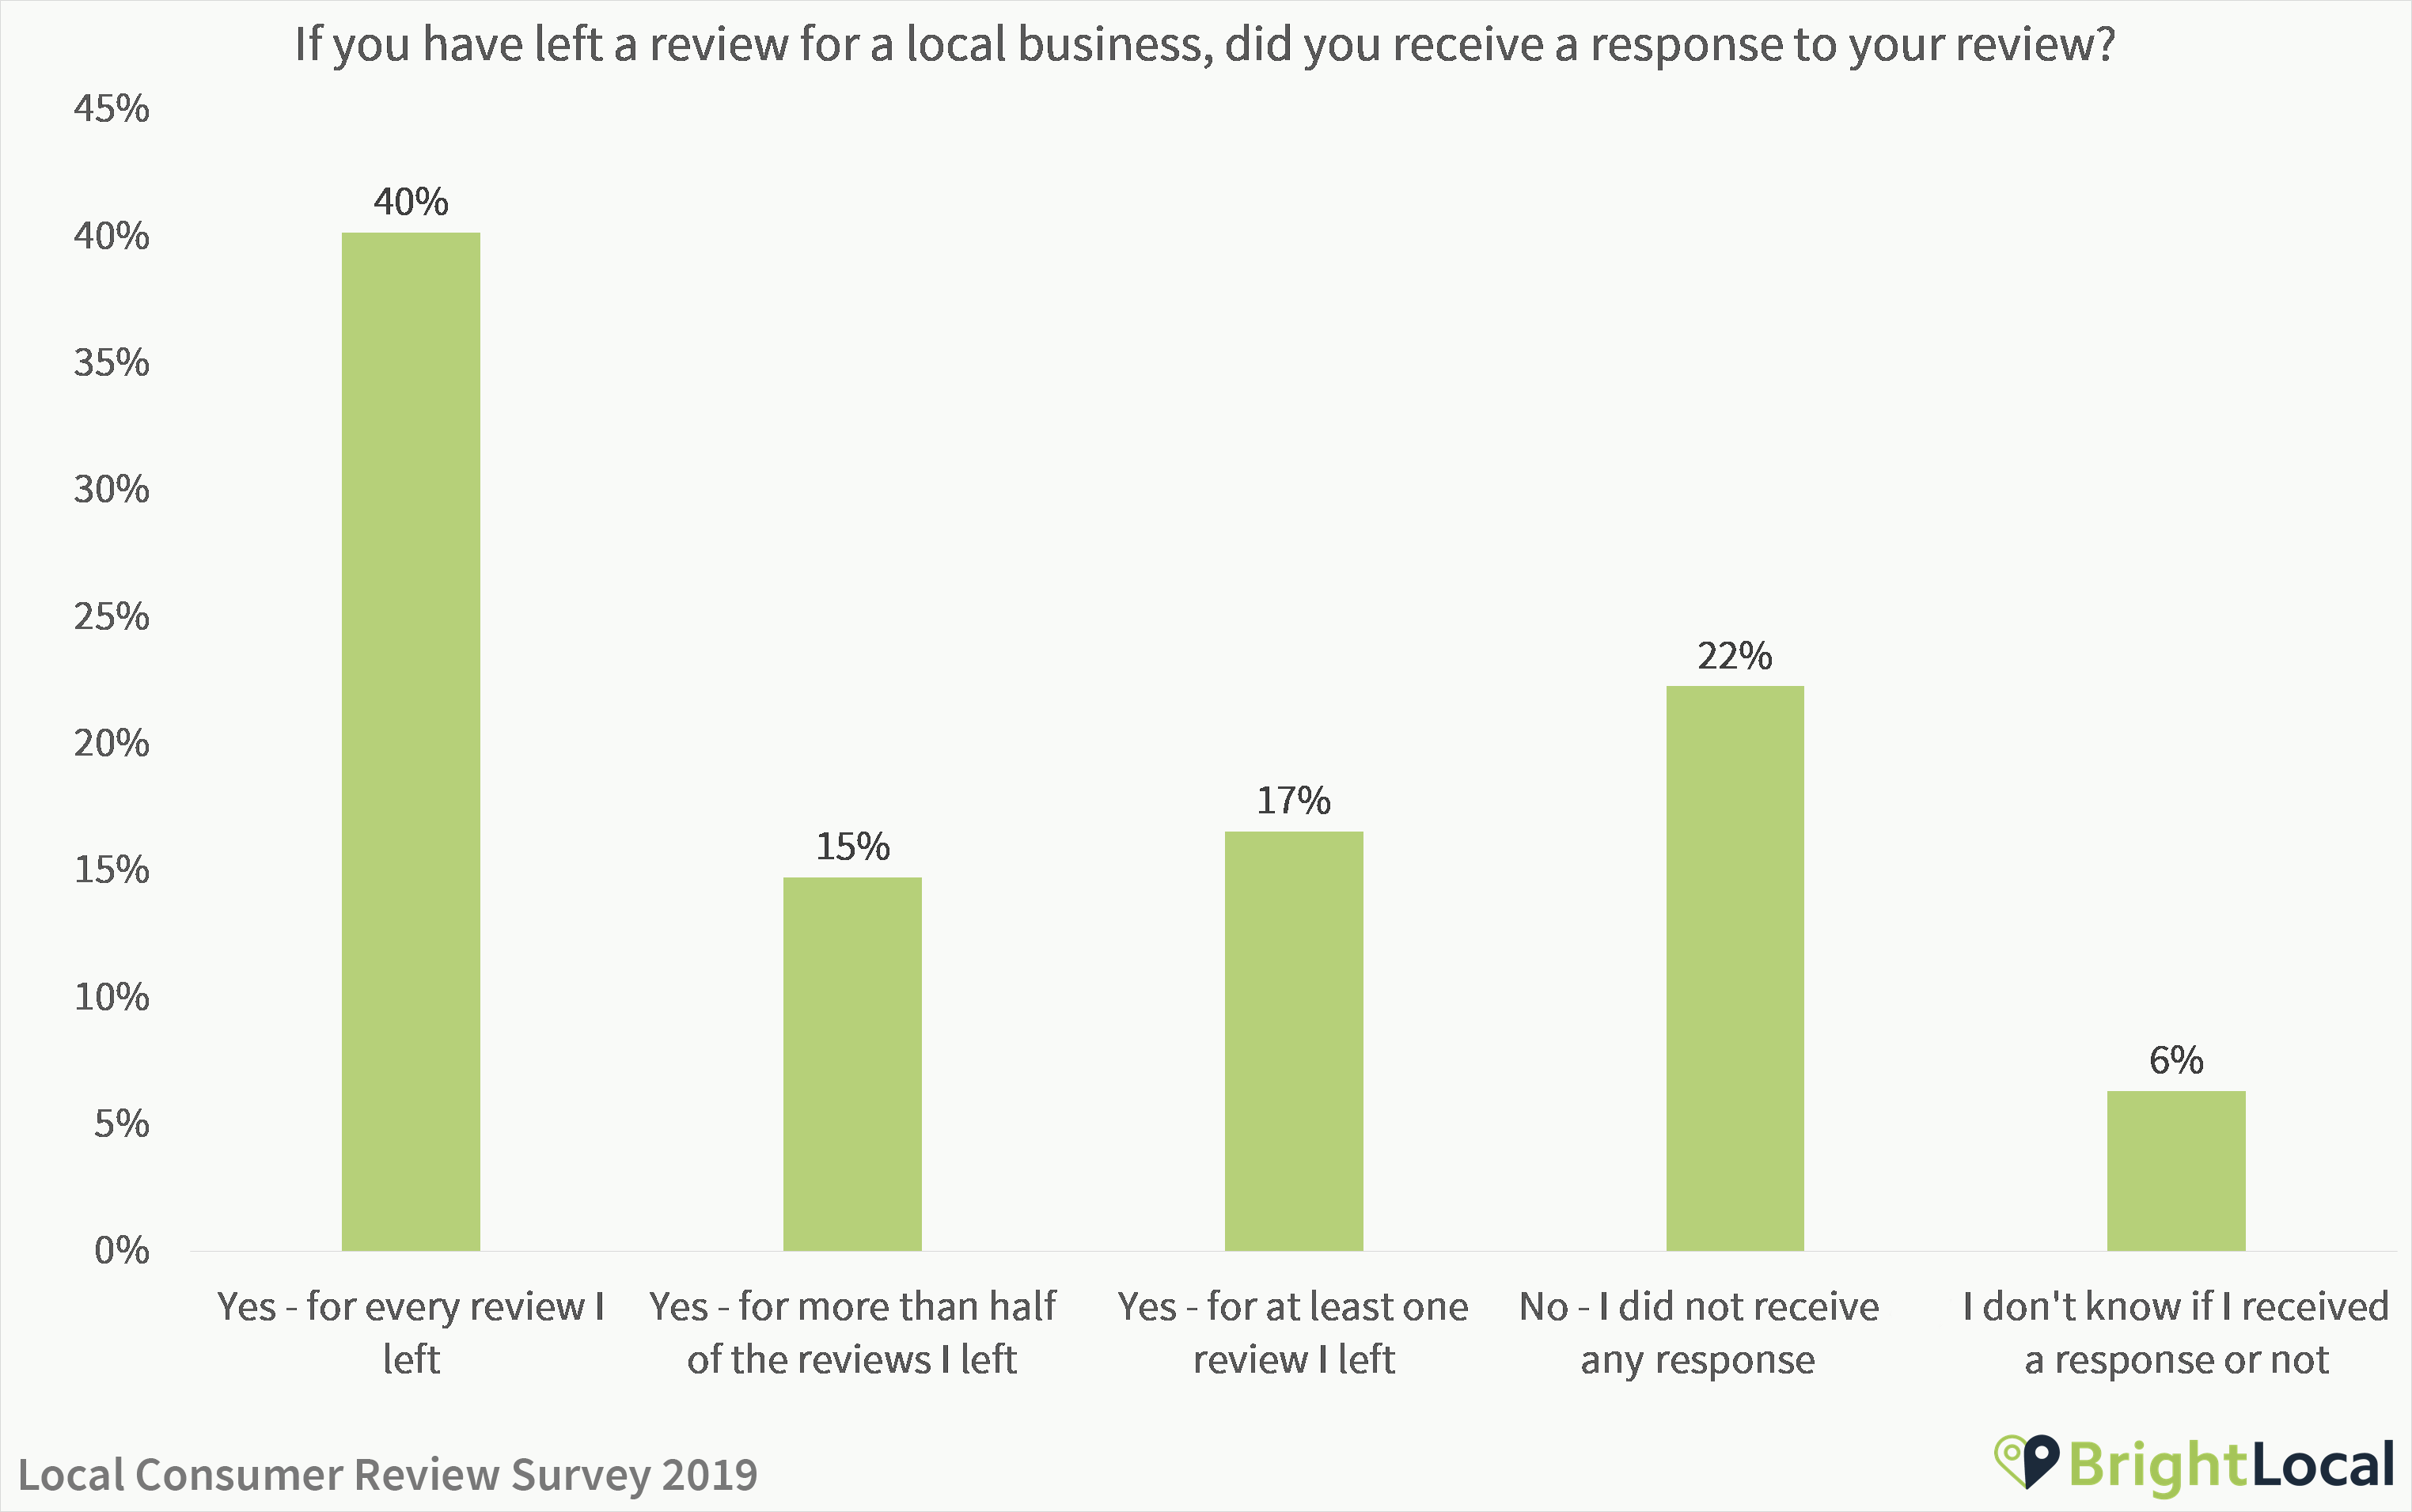 Have you received a response to your reviews